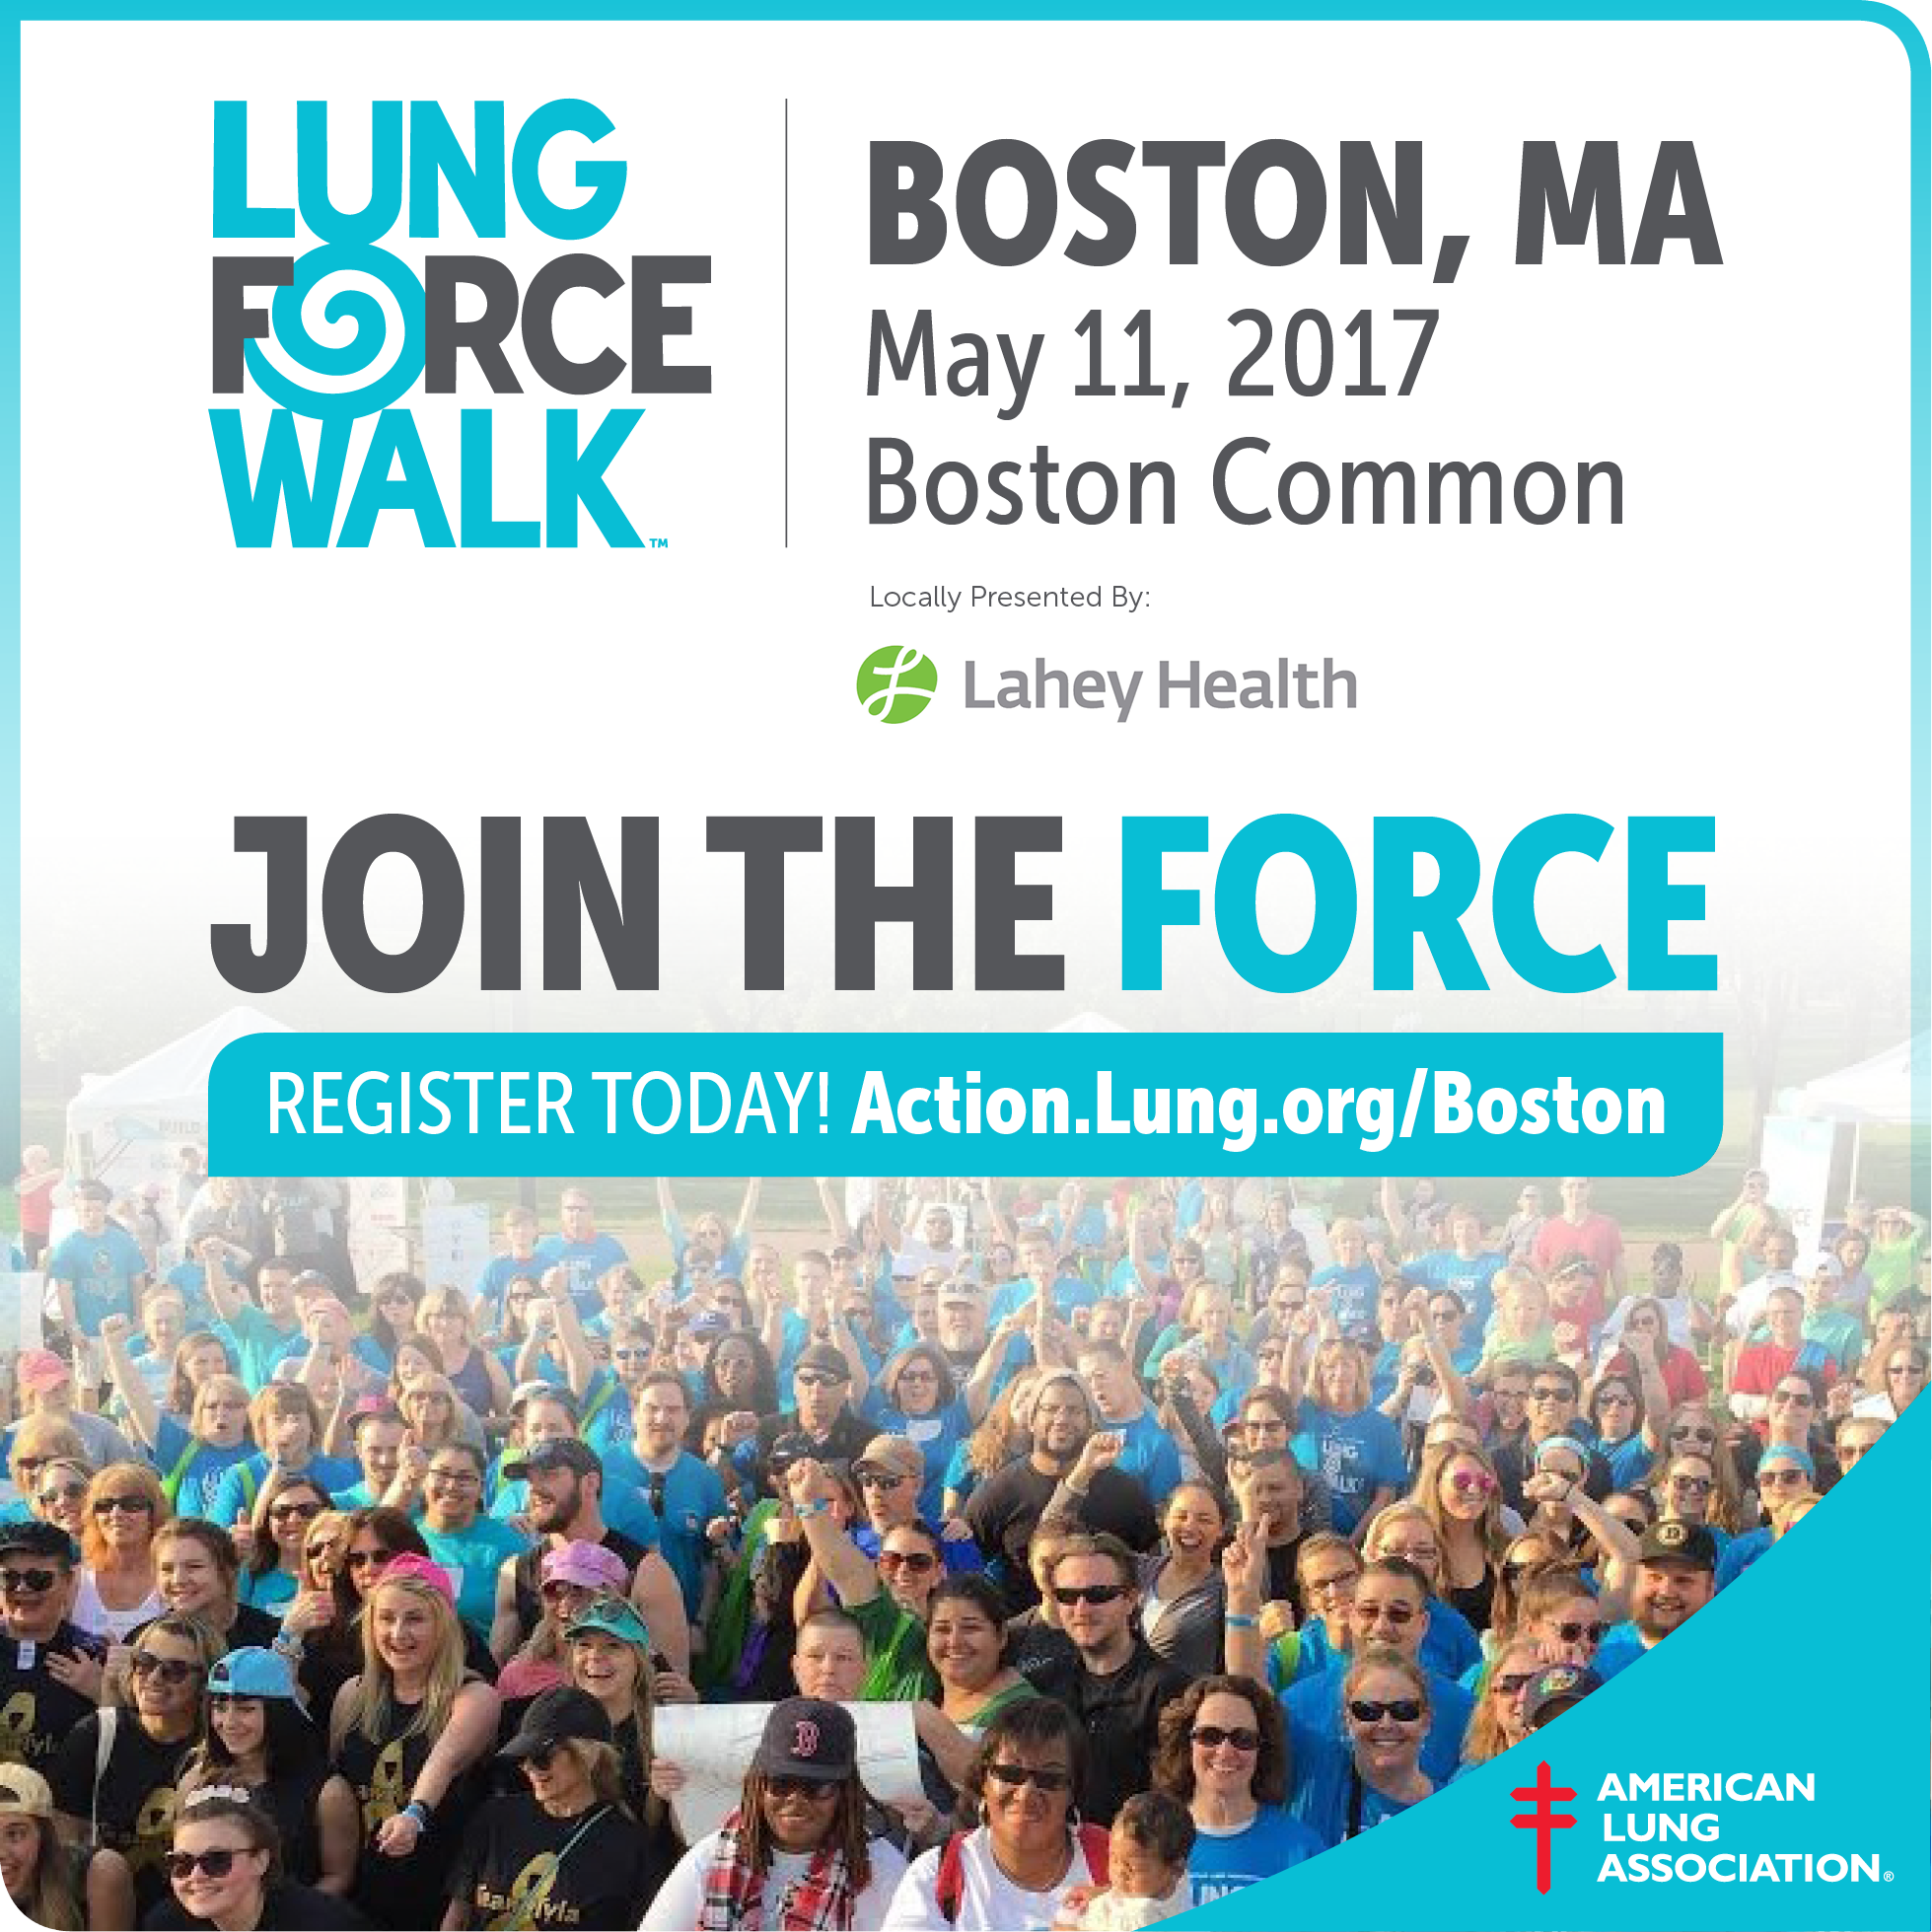 Join Us for Boston's LUNG FORCE Walk